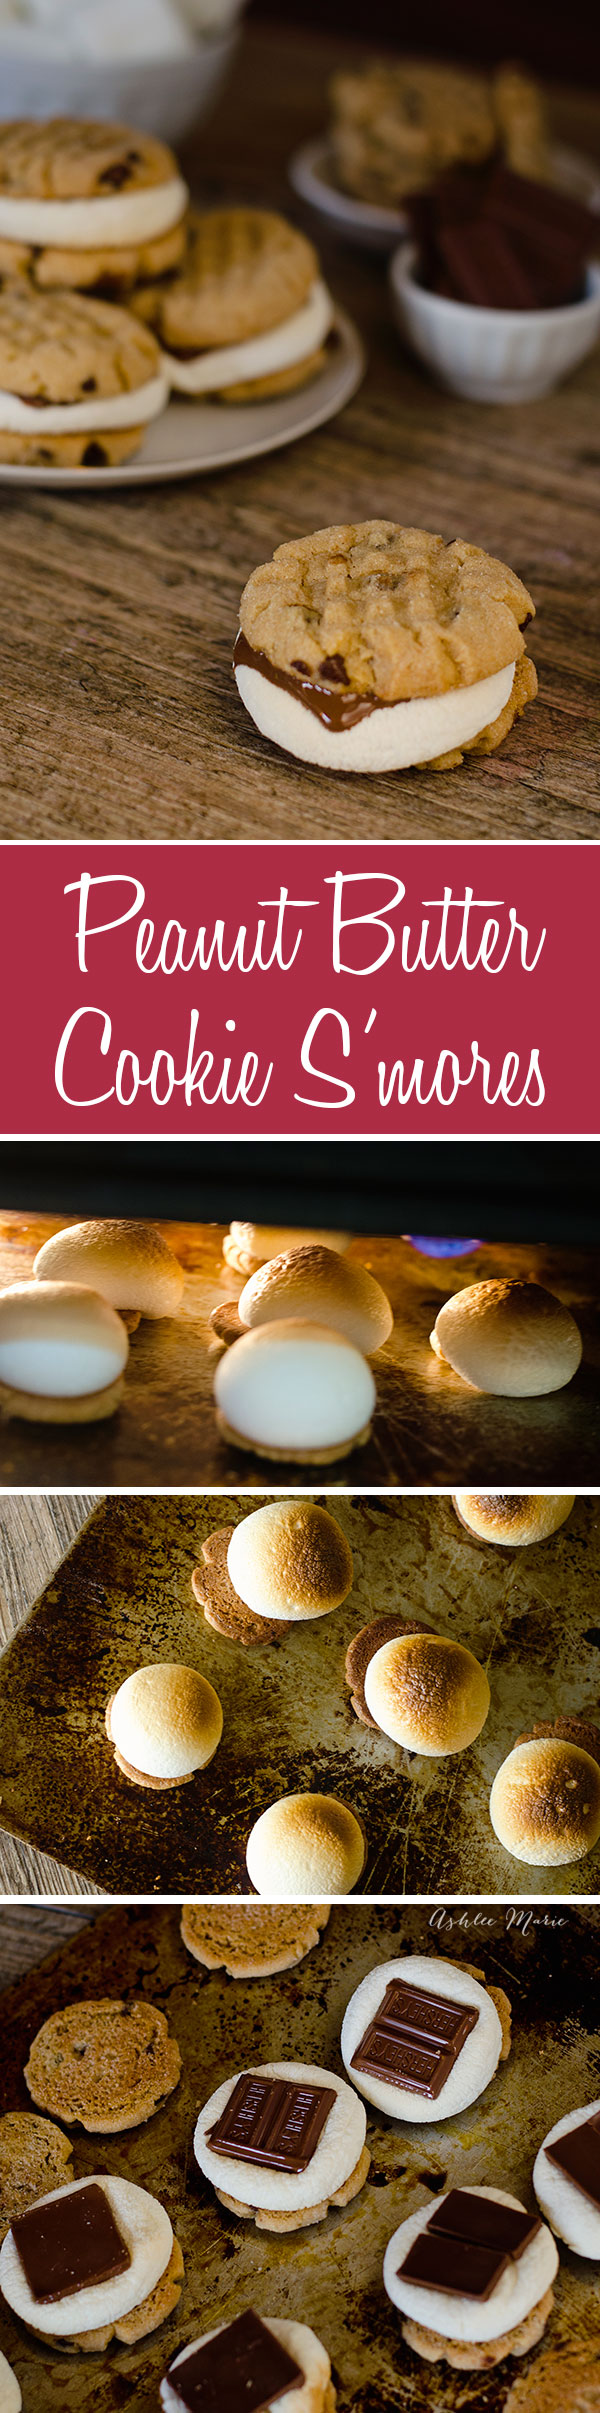 oven baked peanut butter cookie Smores. Easy to make and they taste amazing, One of our favorite summer treats